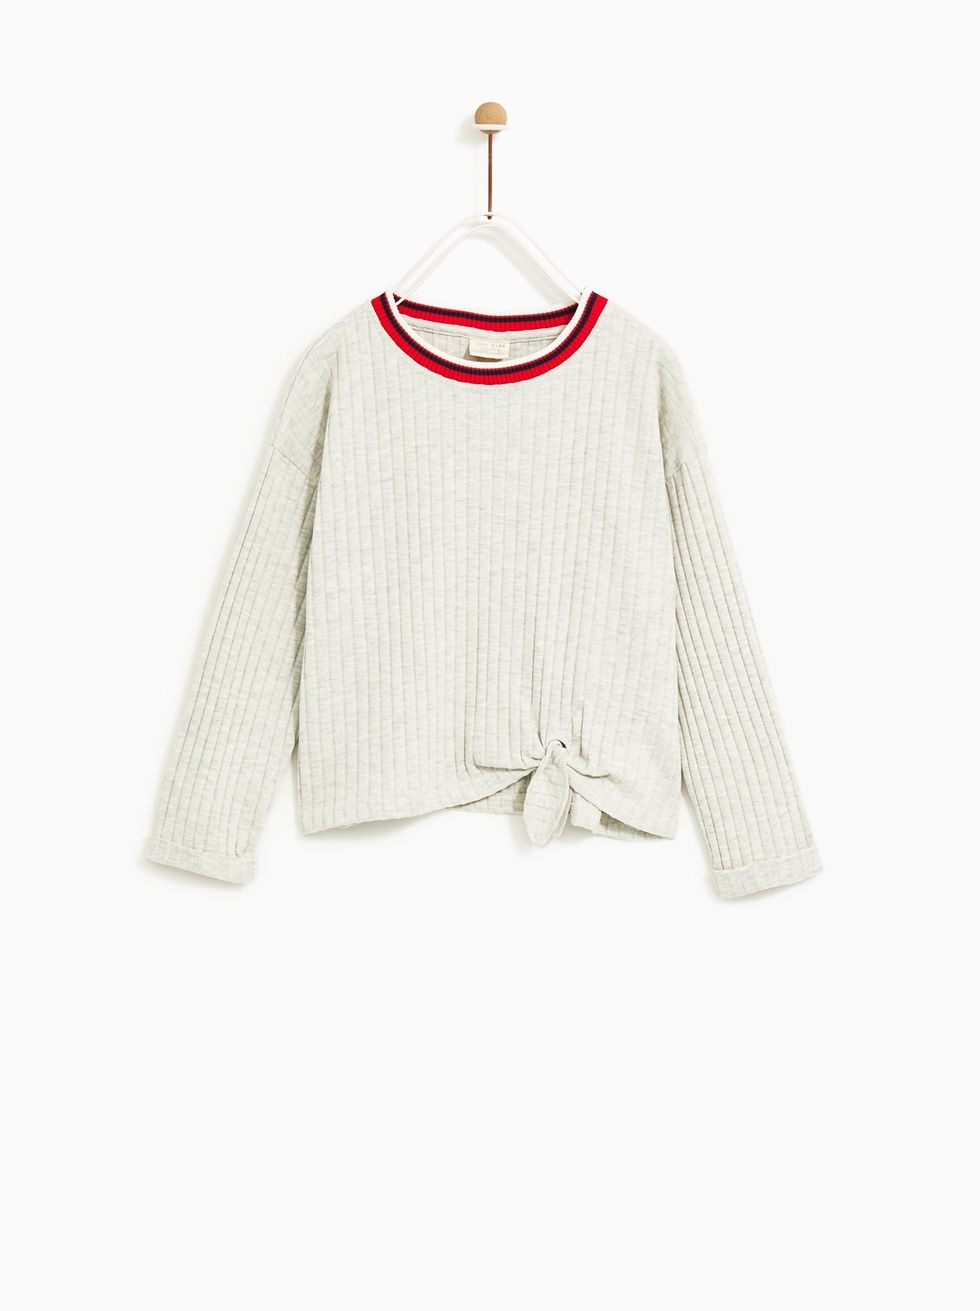 a0f551c125c38 14 kids items we want to buy from Zara right now 🛍 - Motherly